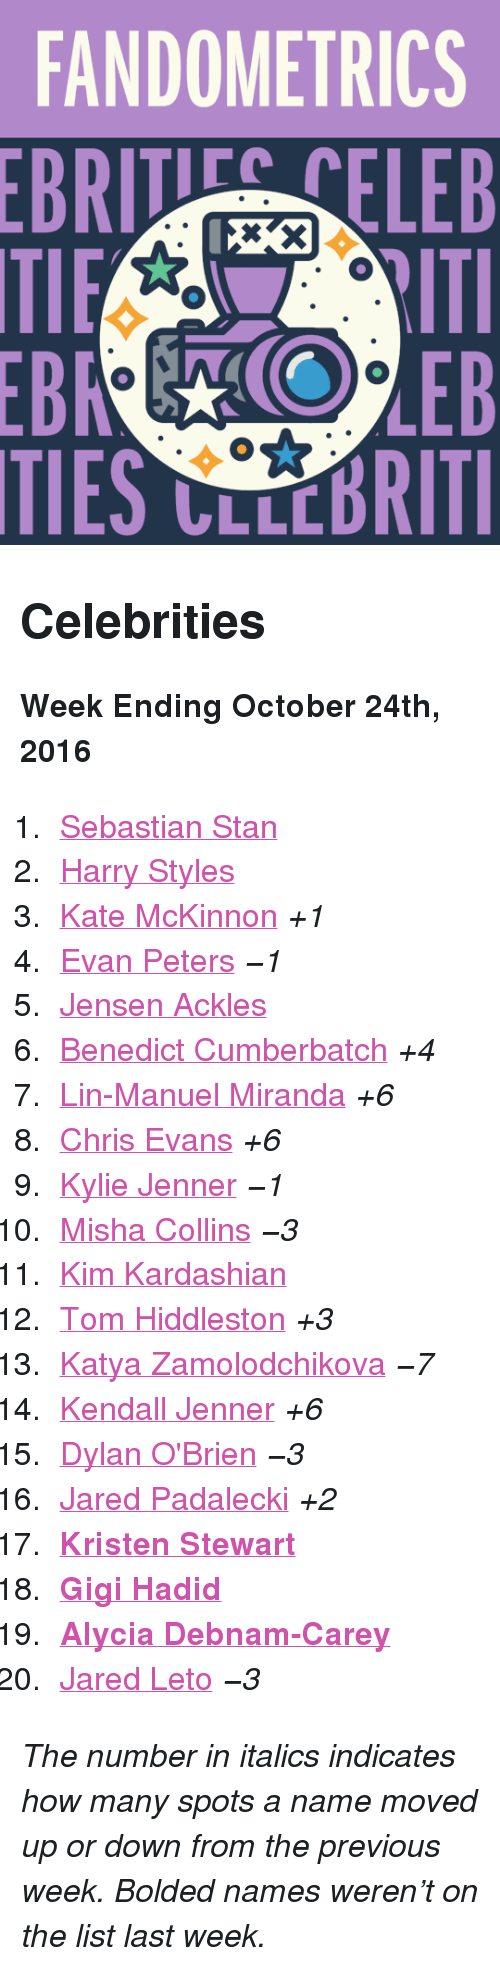 """Kristen Stewart: FANDOMETRICS  BRTELEB  TIES CLLCBRITI <h2>Celebrities</h2><p><b>Week Ending October 24th, 2016</b></p><ol><li><a href=""""http://www.tumblr.com/search/sebastian%20stan"""">Sebastian Stan</a></li>  <li><a href=""""http://www.tumblr.com/search/harry%20styles"""">Harry Styles</a></li>  <li><a href=""""http://www.tumblr.com/search/kate%20mckinnon"""">Kate McKinnon</a><i>+1</i></li>  <li><a href=""""http://www.tumblr.com/search/evan%20peters"""">Evan Peters</a><i><i>−1</i></i></li>  <li><a href=""""http://www.tumblr.com/search/jensen%20ackles"""">Jensen Ackles</a></li>  <li><a href=""""http://www.tumblr.com/search/benedict%20cumberbatch"""">Benedict Cumberbatch</a><i>+4</i></li>  <li><a href=""""http://www.tumblr.com/search/lin%20manuel%20miranda"""">Lin-Manuel Miranda</a><i>+6</i></li>  <li><a href=""""http://www.tumblr.com/search/chris%20evans"""">Chris Evans</a><i>+6</i></li>  <li><a href=""""http://www.tumblr.com/search/kylie%20jenner"""">Kylie Jenner</a><i><i>−1</i></i></li>  <li><a href=""""http://www.tumblr.com/search/misha%20collins"""">Misha Collins</a><i><i>−3</i></i></li>  <li><a href=""""http://www.tumblr.com/search/kim%20kardashian"""">Kim Kardashian</a></li>  <li><a href=""""http://www.tumblr.com/search/tom%20hiddleston"""">Tom Hiddleston</a><i>+3</i></li>  <li><a href=""""http://www.tumblr.com/search/katya%20zamolodchikova"""">Katya Zamolodchikova</a><i><i>−7</i></i></li>  <li><a href=""""http://www.tumblr.com/search/kendall%20jenner"""">Kendall Jenner</a><i>+6</i></li>  <li><a href=""""http://www.tumblr.com/search/dylan%20o'brien"""">Dylan O'Brien</a><i><i>−3</i></i></li>  <li><a href=""""http://www.tumblr.com/search/jared%20padalecki"""">Jared Padalecki</a><i>+2</i></li>  <li><a href=""""http://www.tumblr.com/search/kristen%20stewart""""><b>Kristen Stewart</b></a></li>  <li><a href=""""http://www.tumblr.com/search/gigi%20hadid""""><b>Gigi Hadid</b></a></li>  <li><a href=""""http://www.tumblr.com/search/alycia%20debnam%20carey""""><b>Alycia Debnam-Carey</b></a></li><li><a href=""""http://www.tumblr.com/search/jared%20leto"""">Jared Leto</a><i><i>−3</i></i>"""